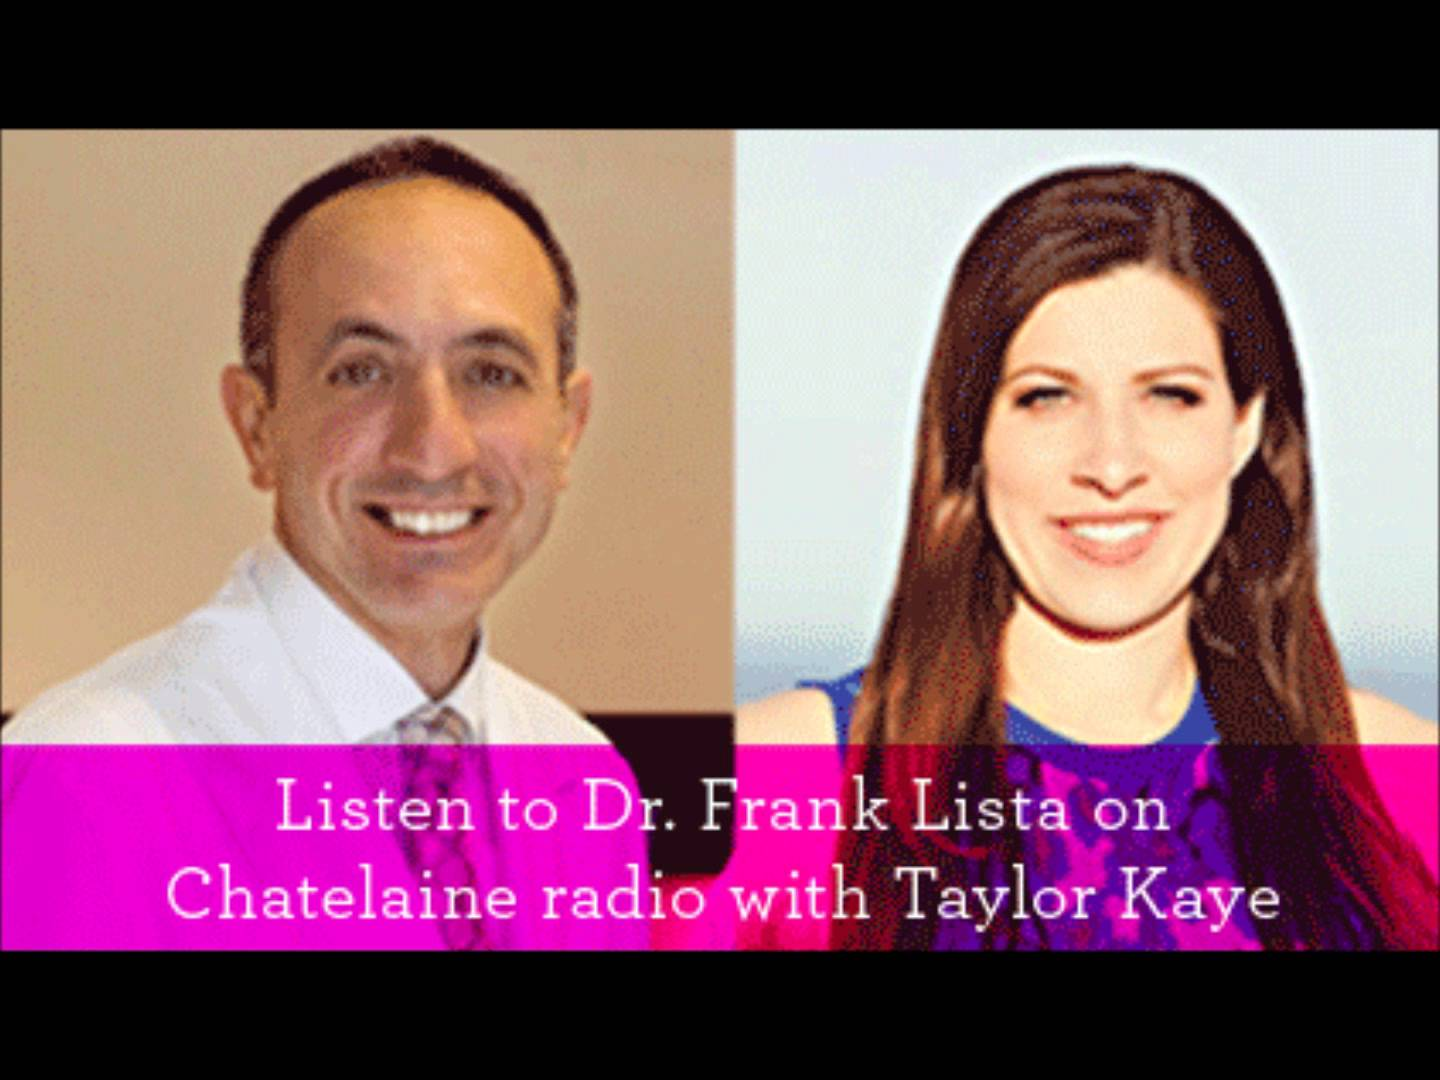 Dr. Lista discusses celebrity treatments on Chatelaine Radio with Taylor Kaye